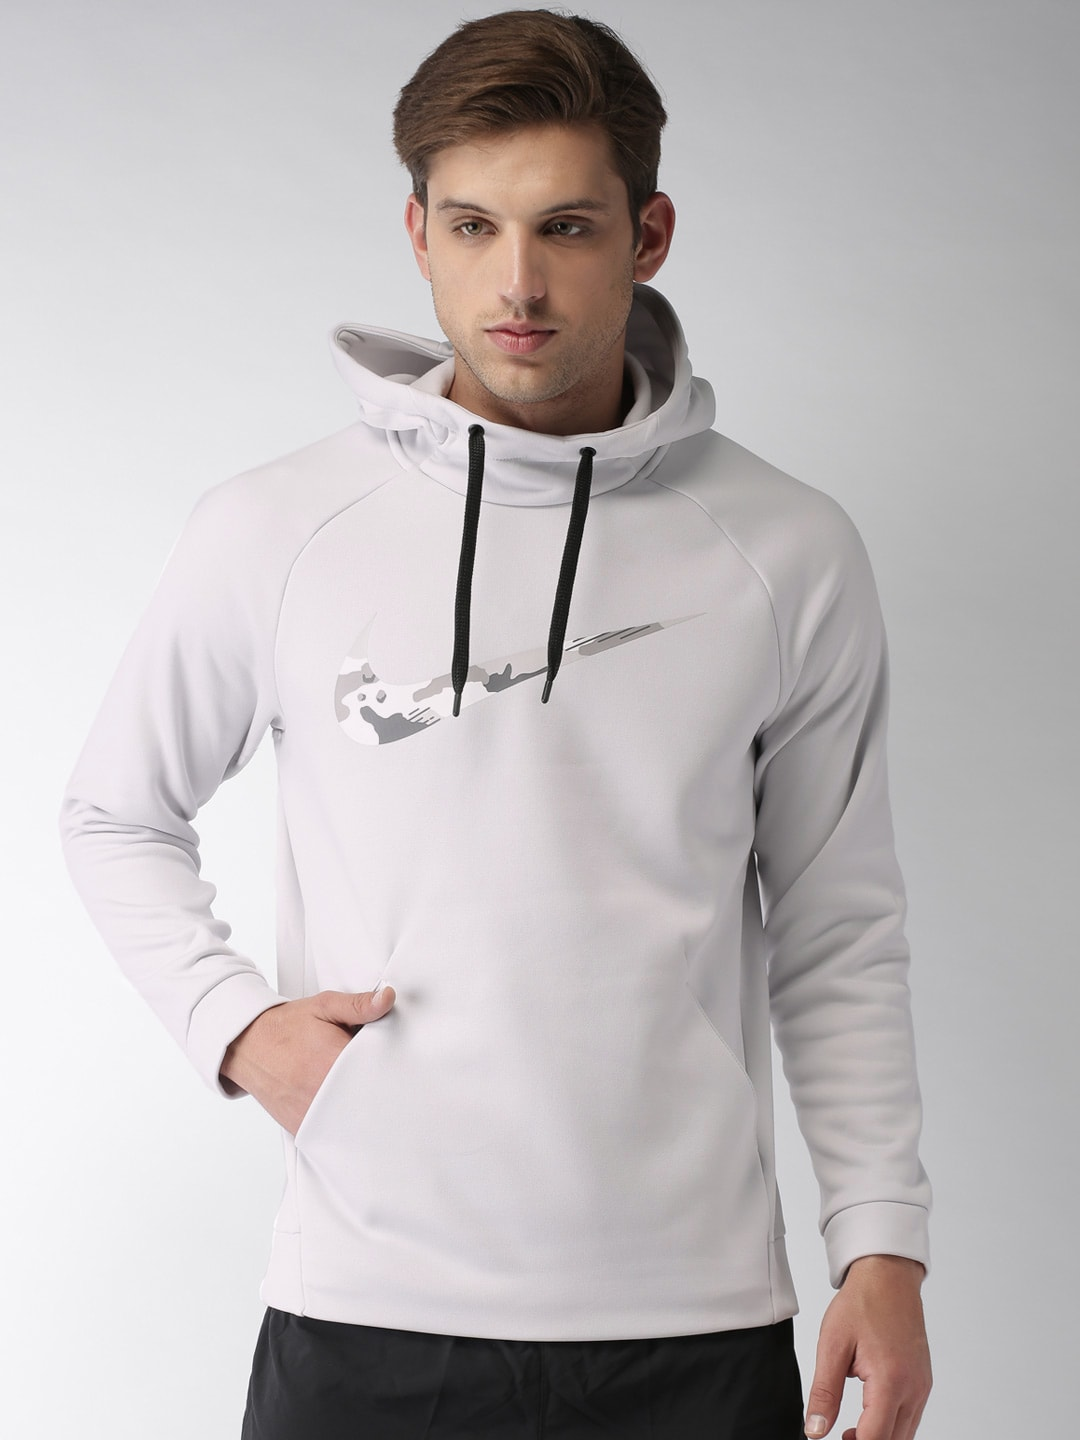 abc5a9d791f0 Nike Backpacks Sweatshirts Tops - Buy Nike Backpacks Sweatshirts Tops  online in India